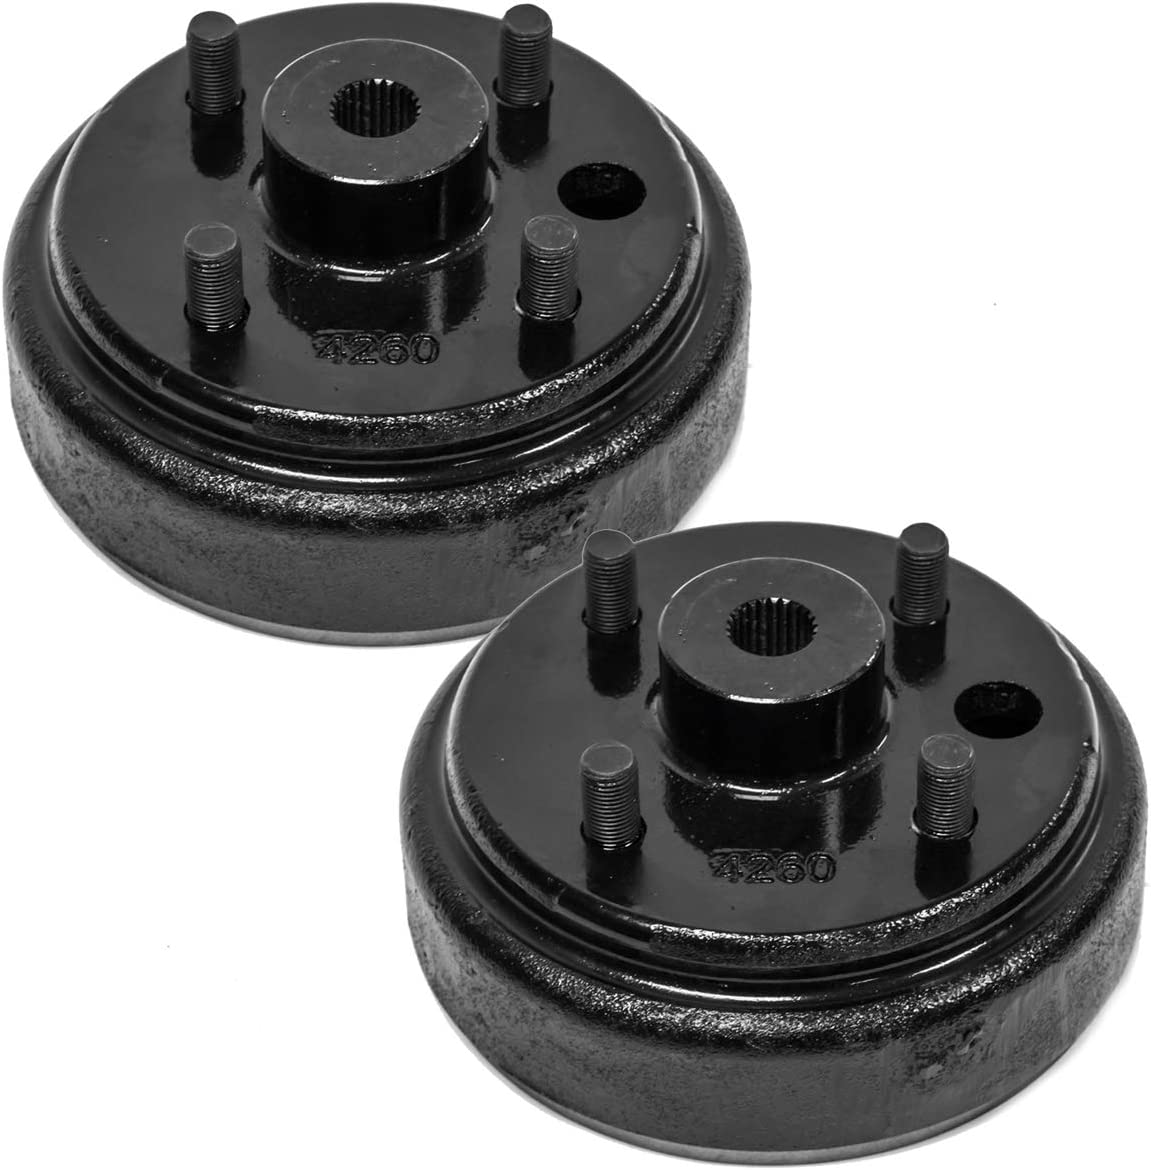 B07L4ZKWH3 (2) Brake Hub Drum Compatible with EZGO 1982 Up 4 Cycle Golf Carts 17082-G2, 17298-G1 & 19186-G1 61tSB2B0QmAL